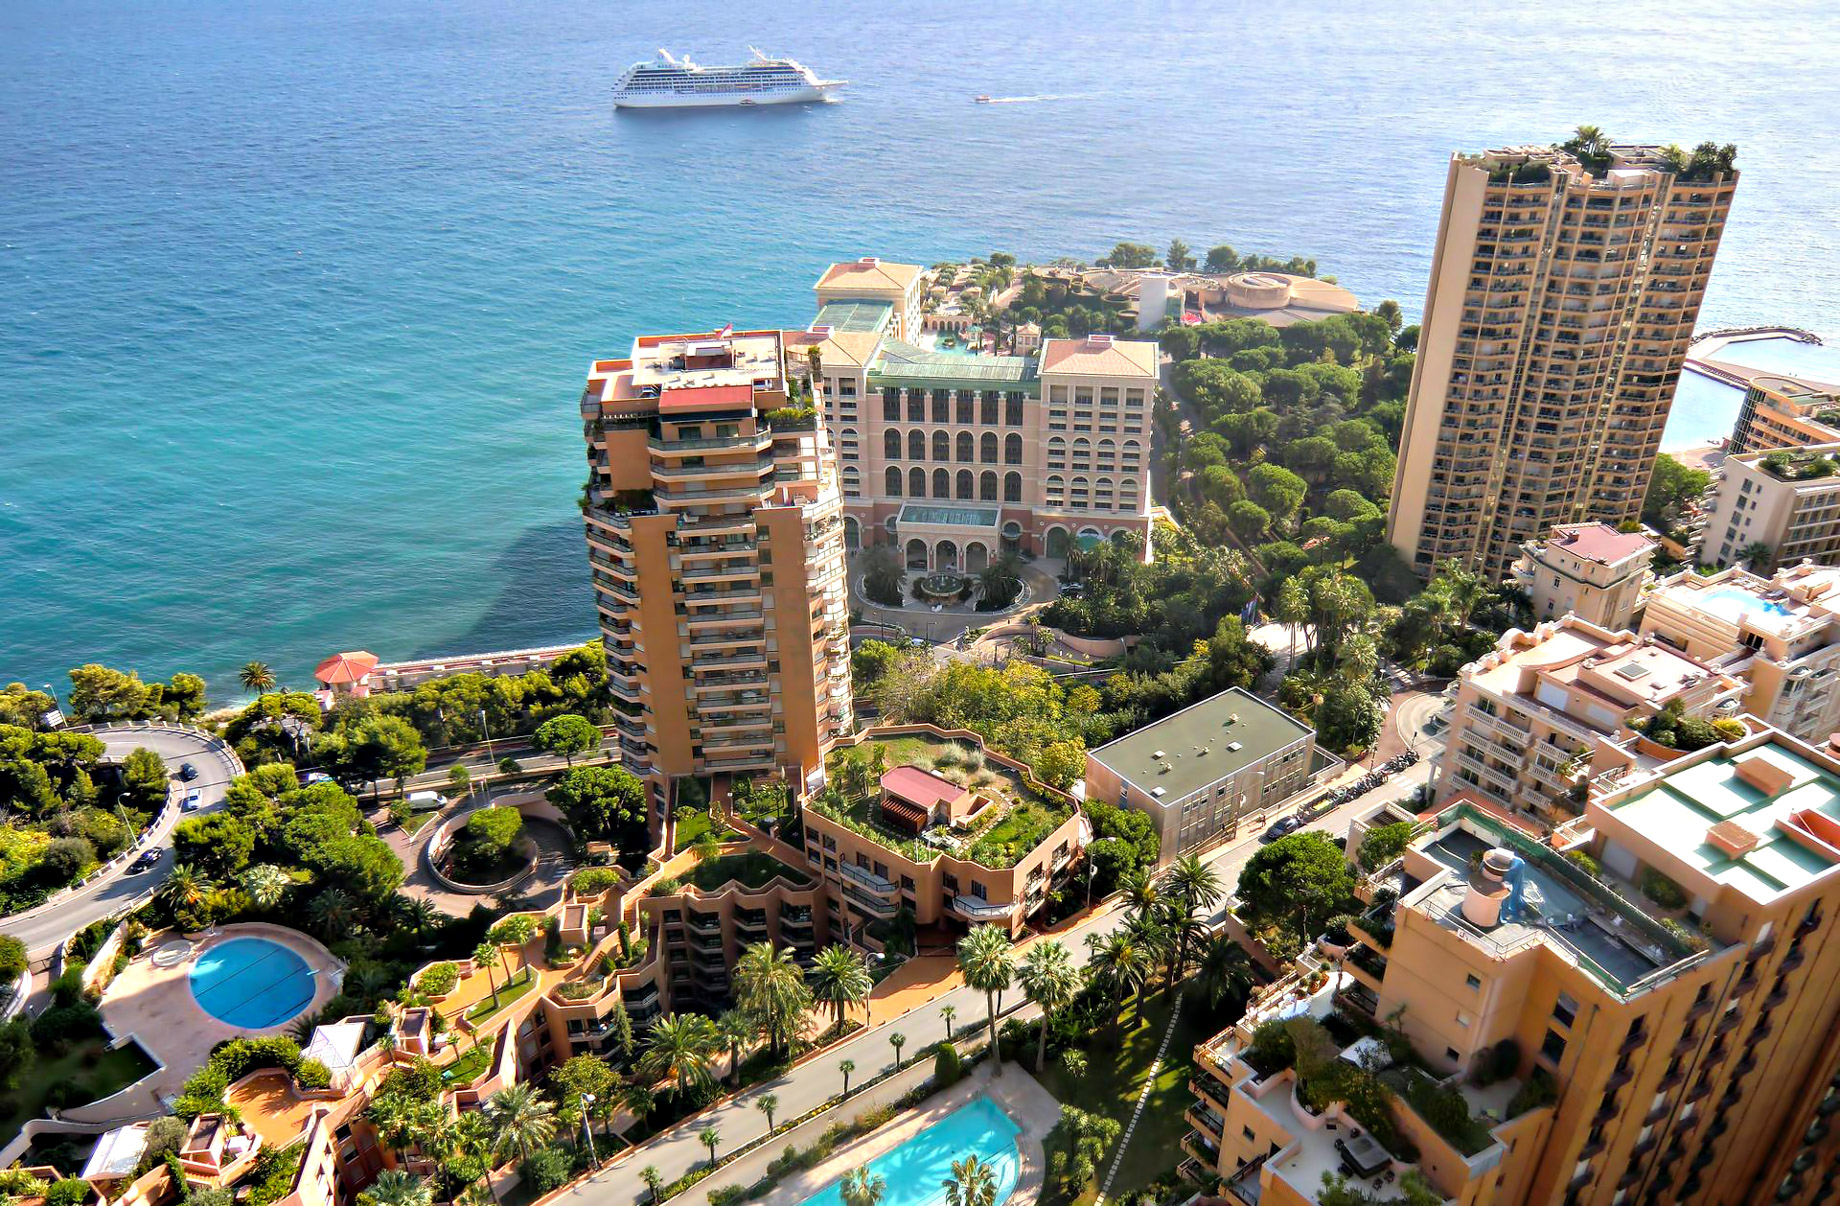 House Hunting in Monaco - Inside One of the Worlds Most Expensive Property Markets